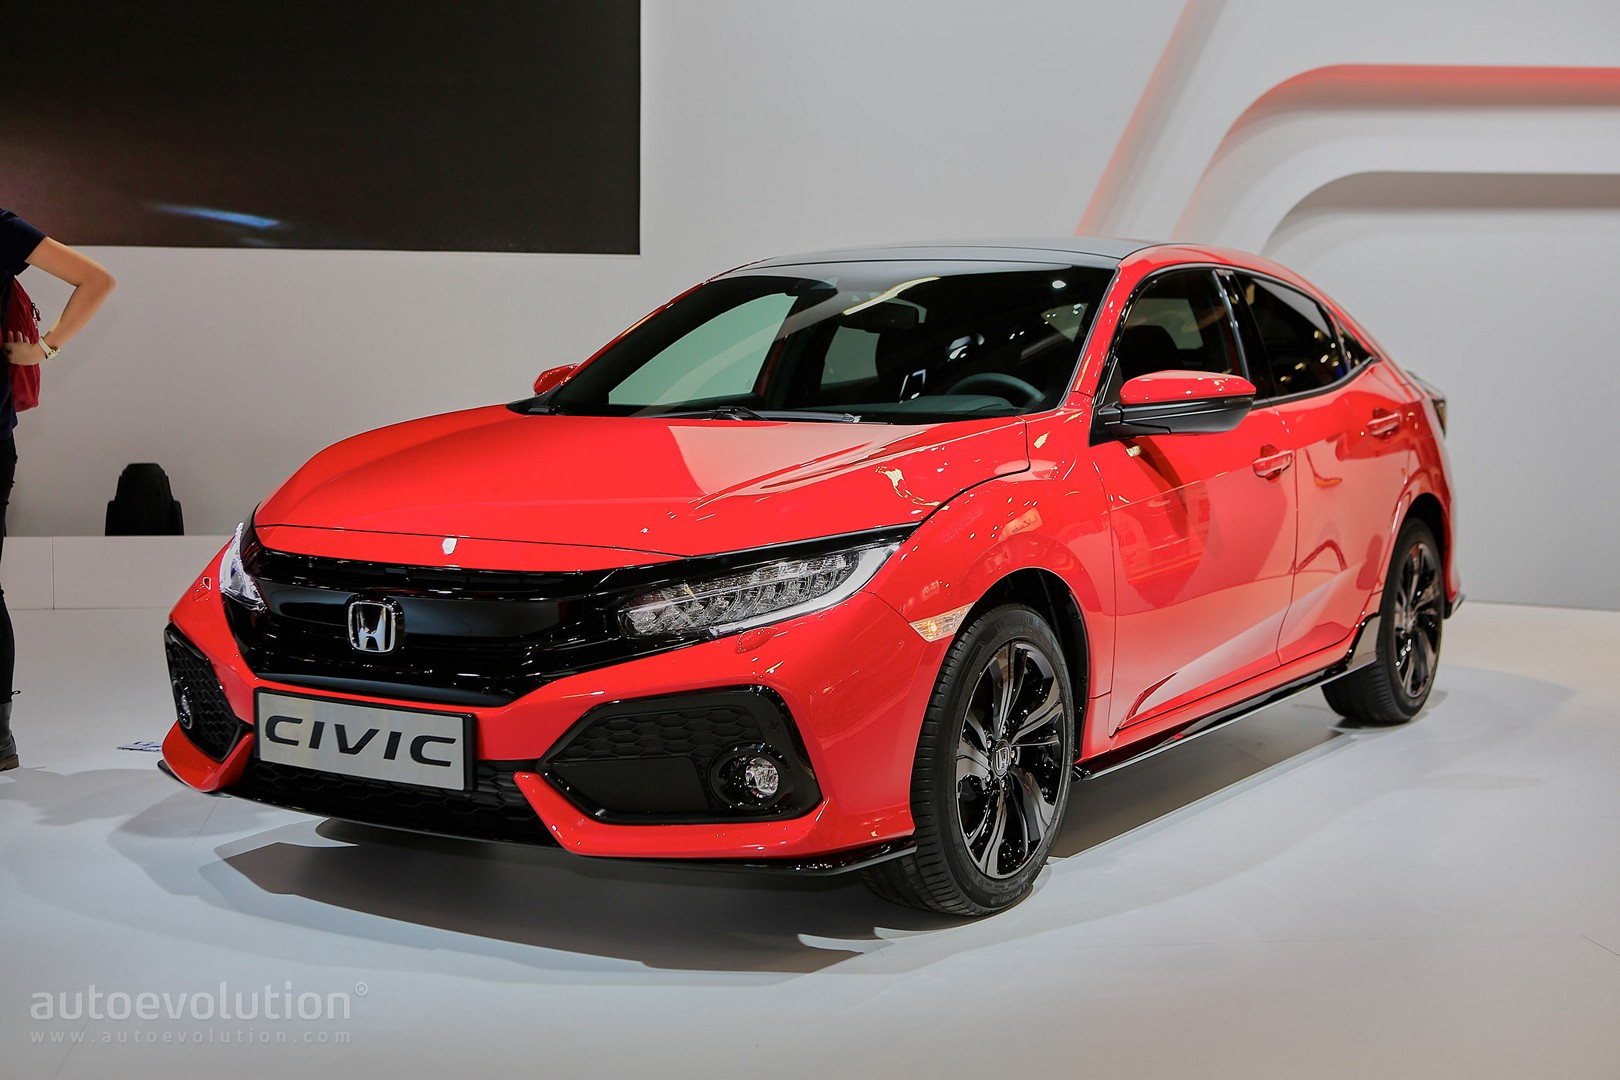 2017 honda civic hatchback looks like a race car in paris autoevolution. Black Bedroom Furniture Sets. Home Design Ideas